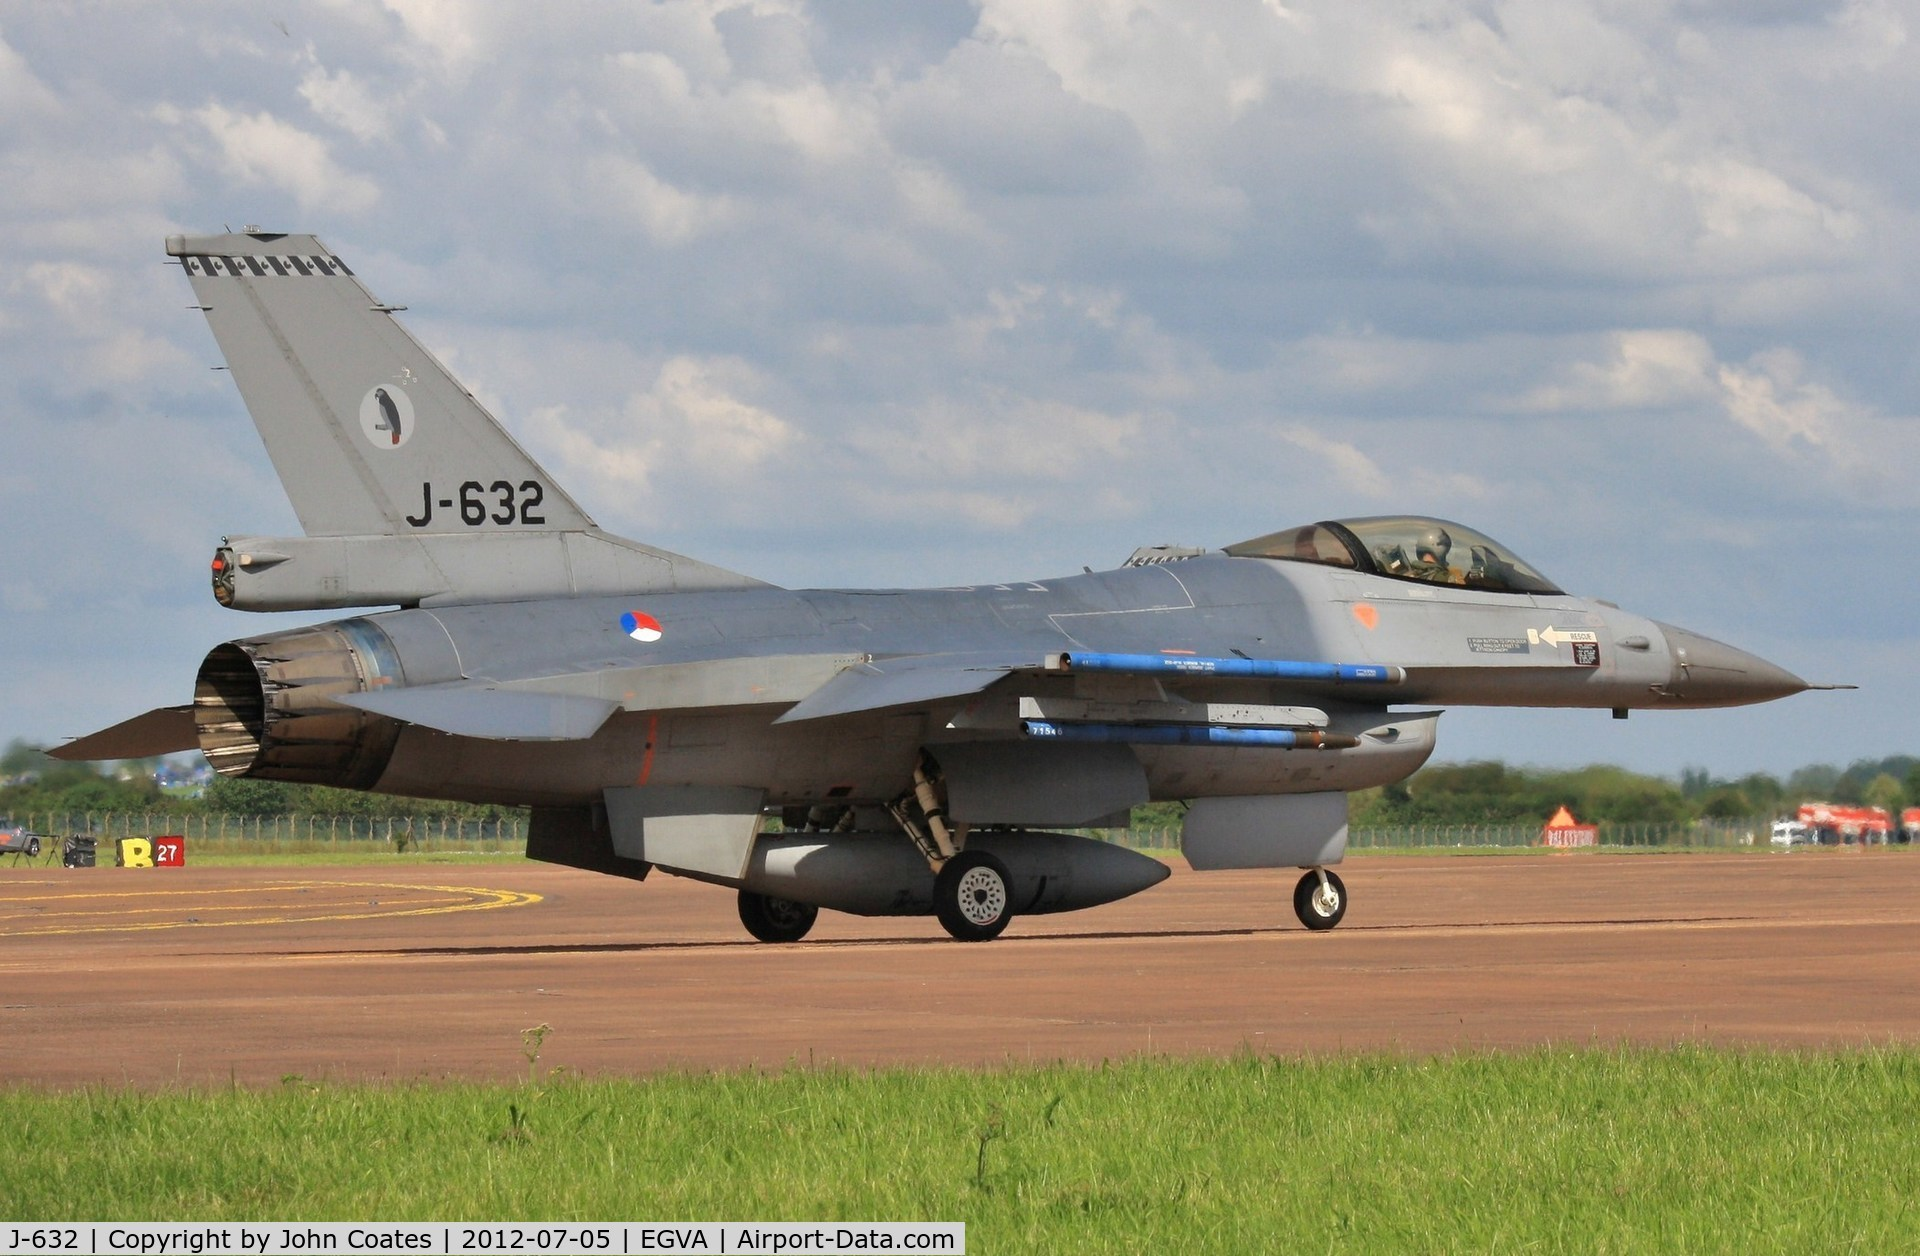 J-632, General Dynamics F-16A Fighting Falcon C/N 6D-64, Arriving for RIAT